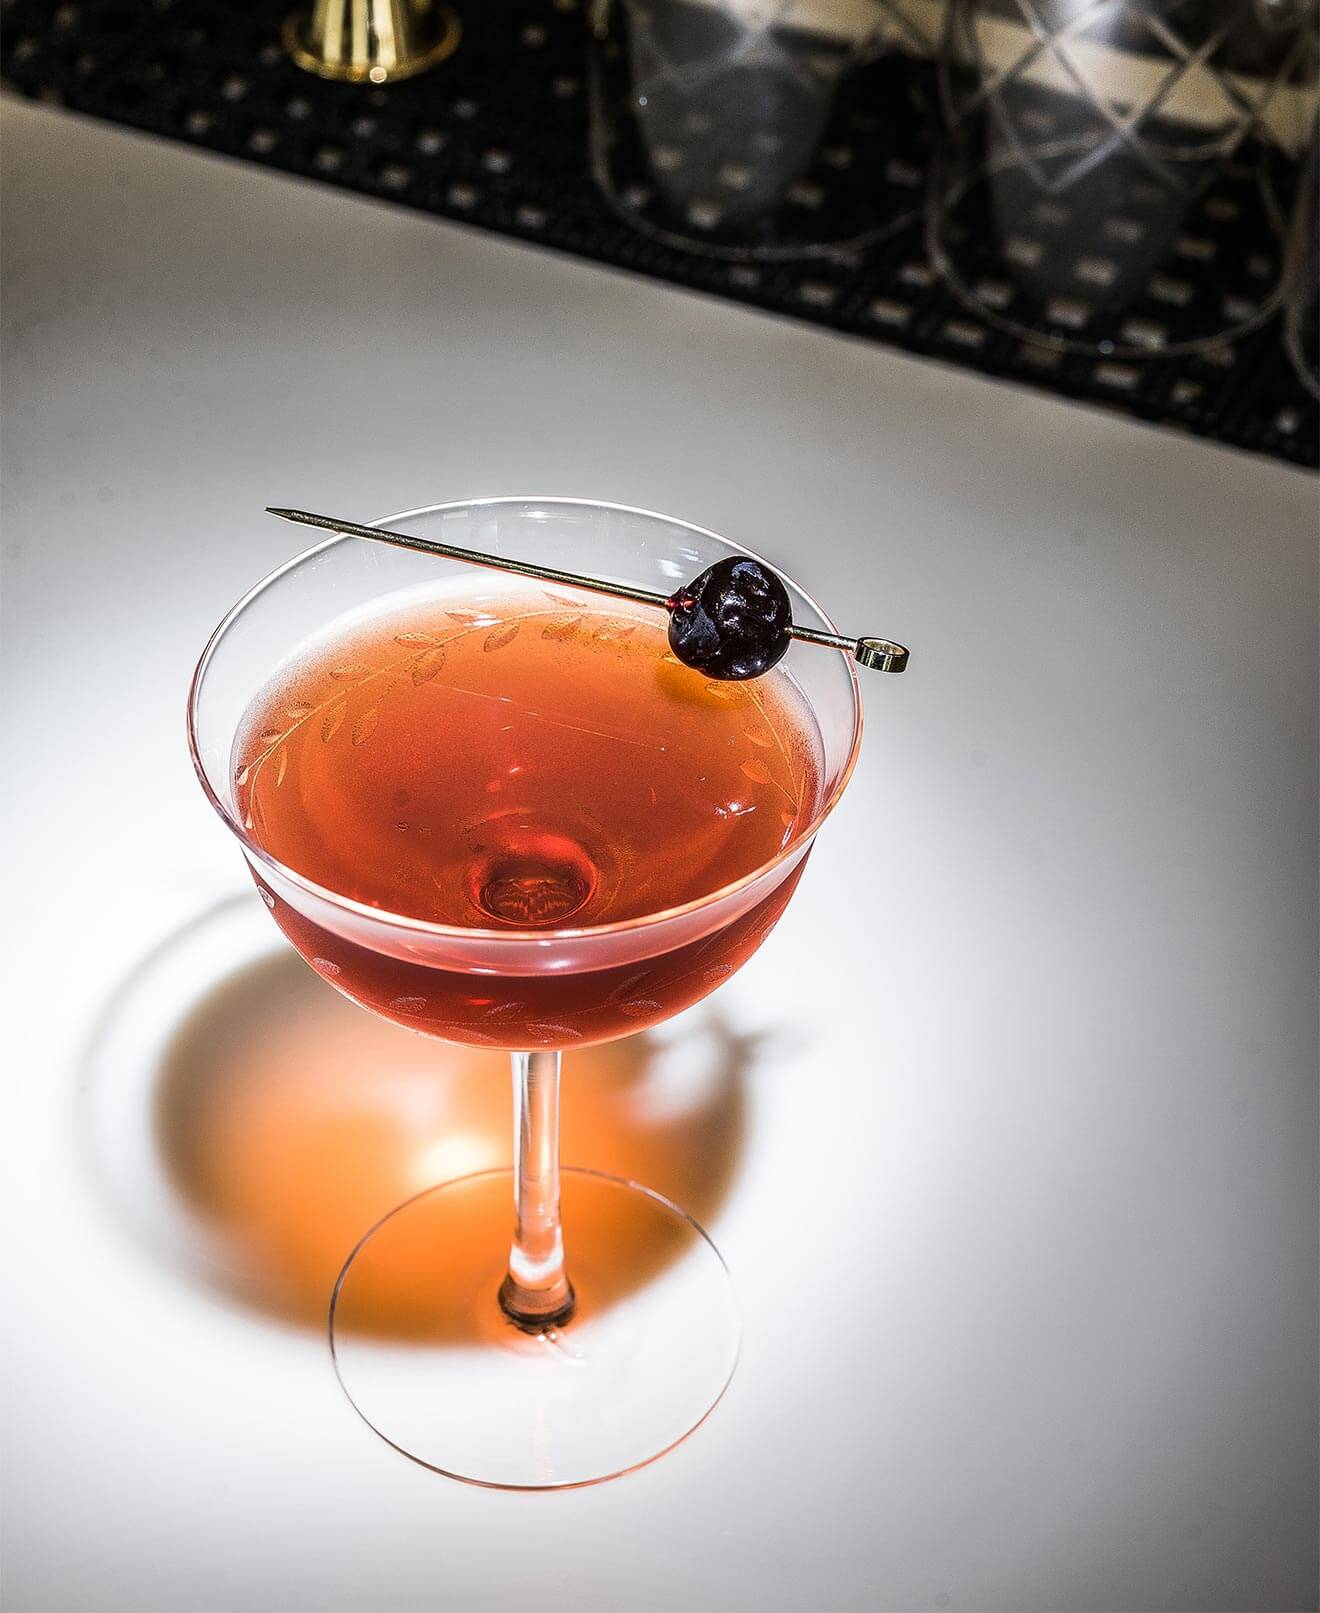 Surfer Rob Roy cocktail with toothipick garnish